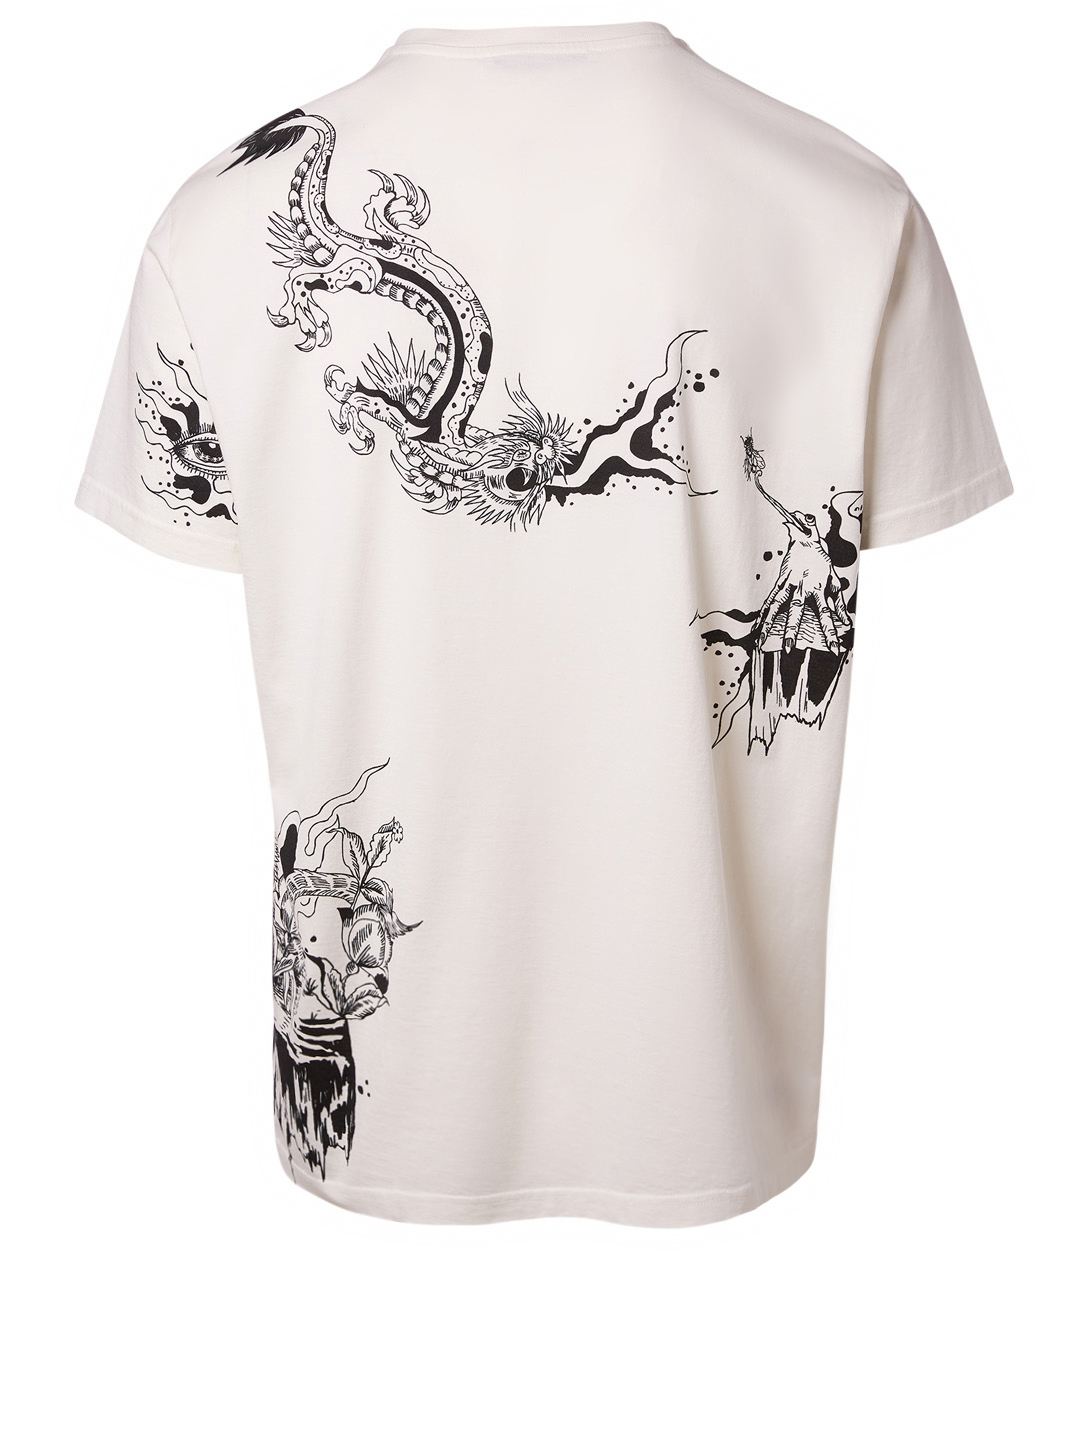 GIVENCHY Tee-shirt à imprimé Monsters Hommes Blanc